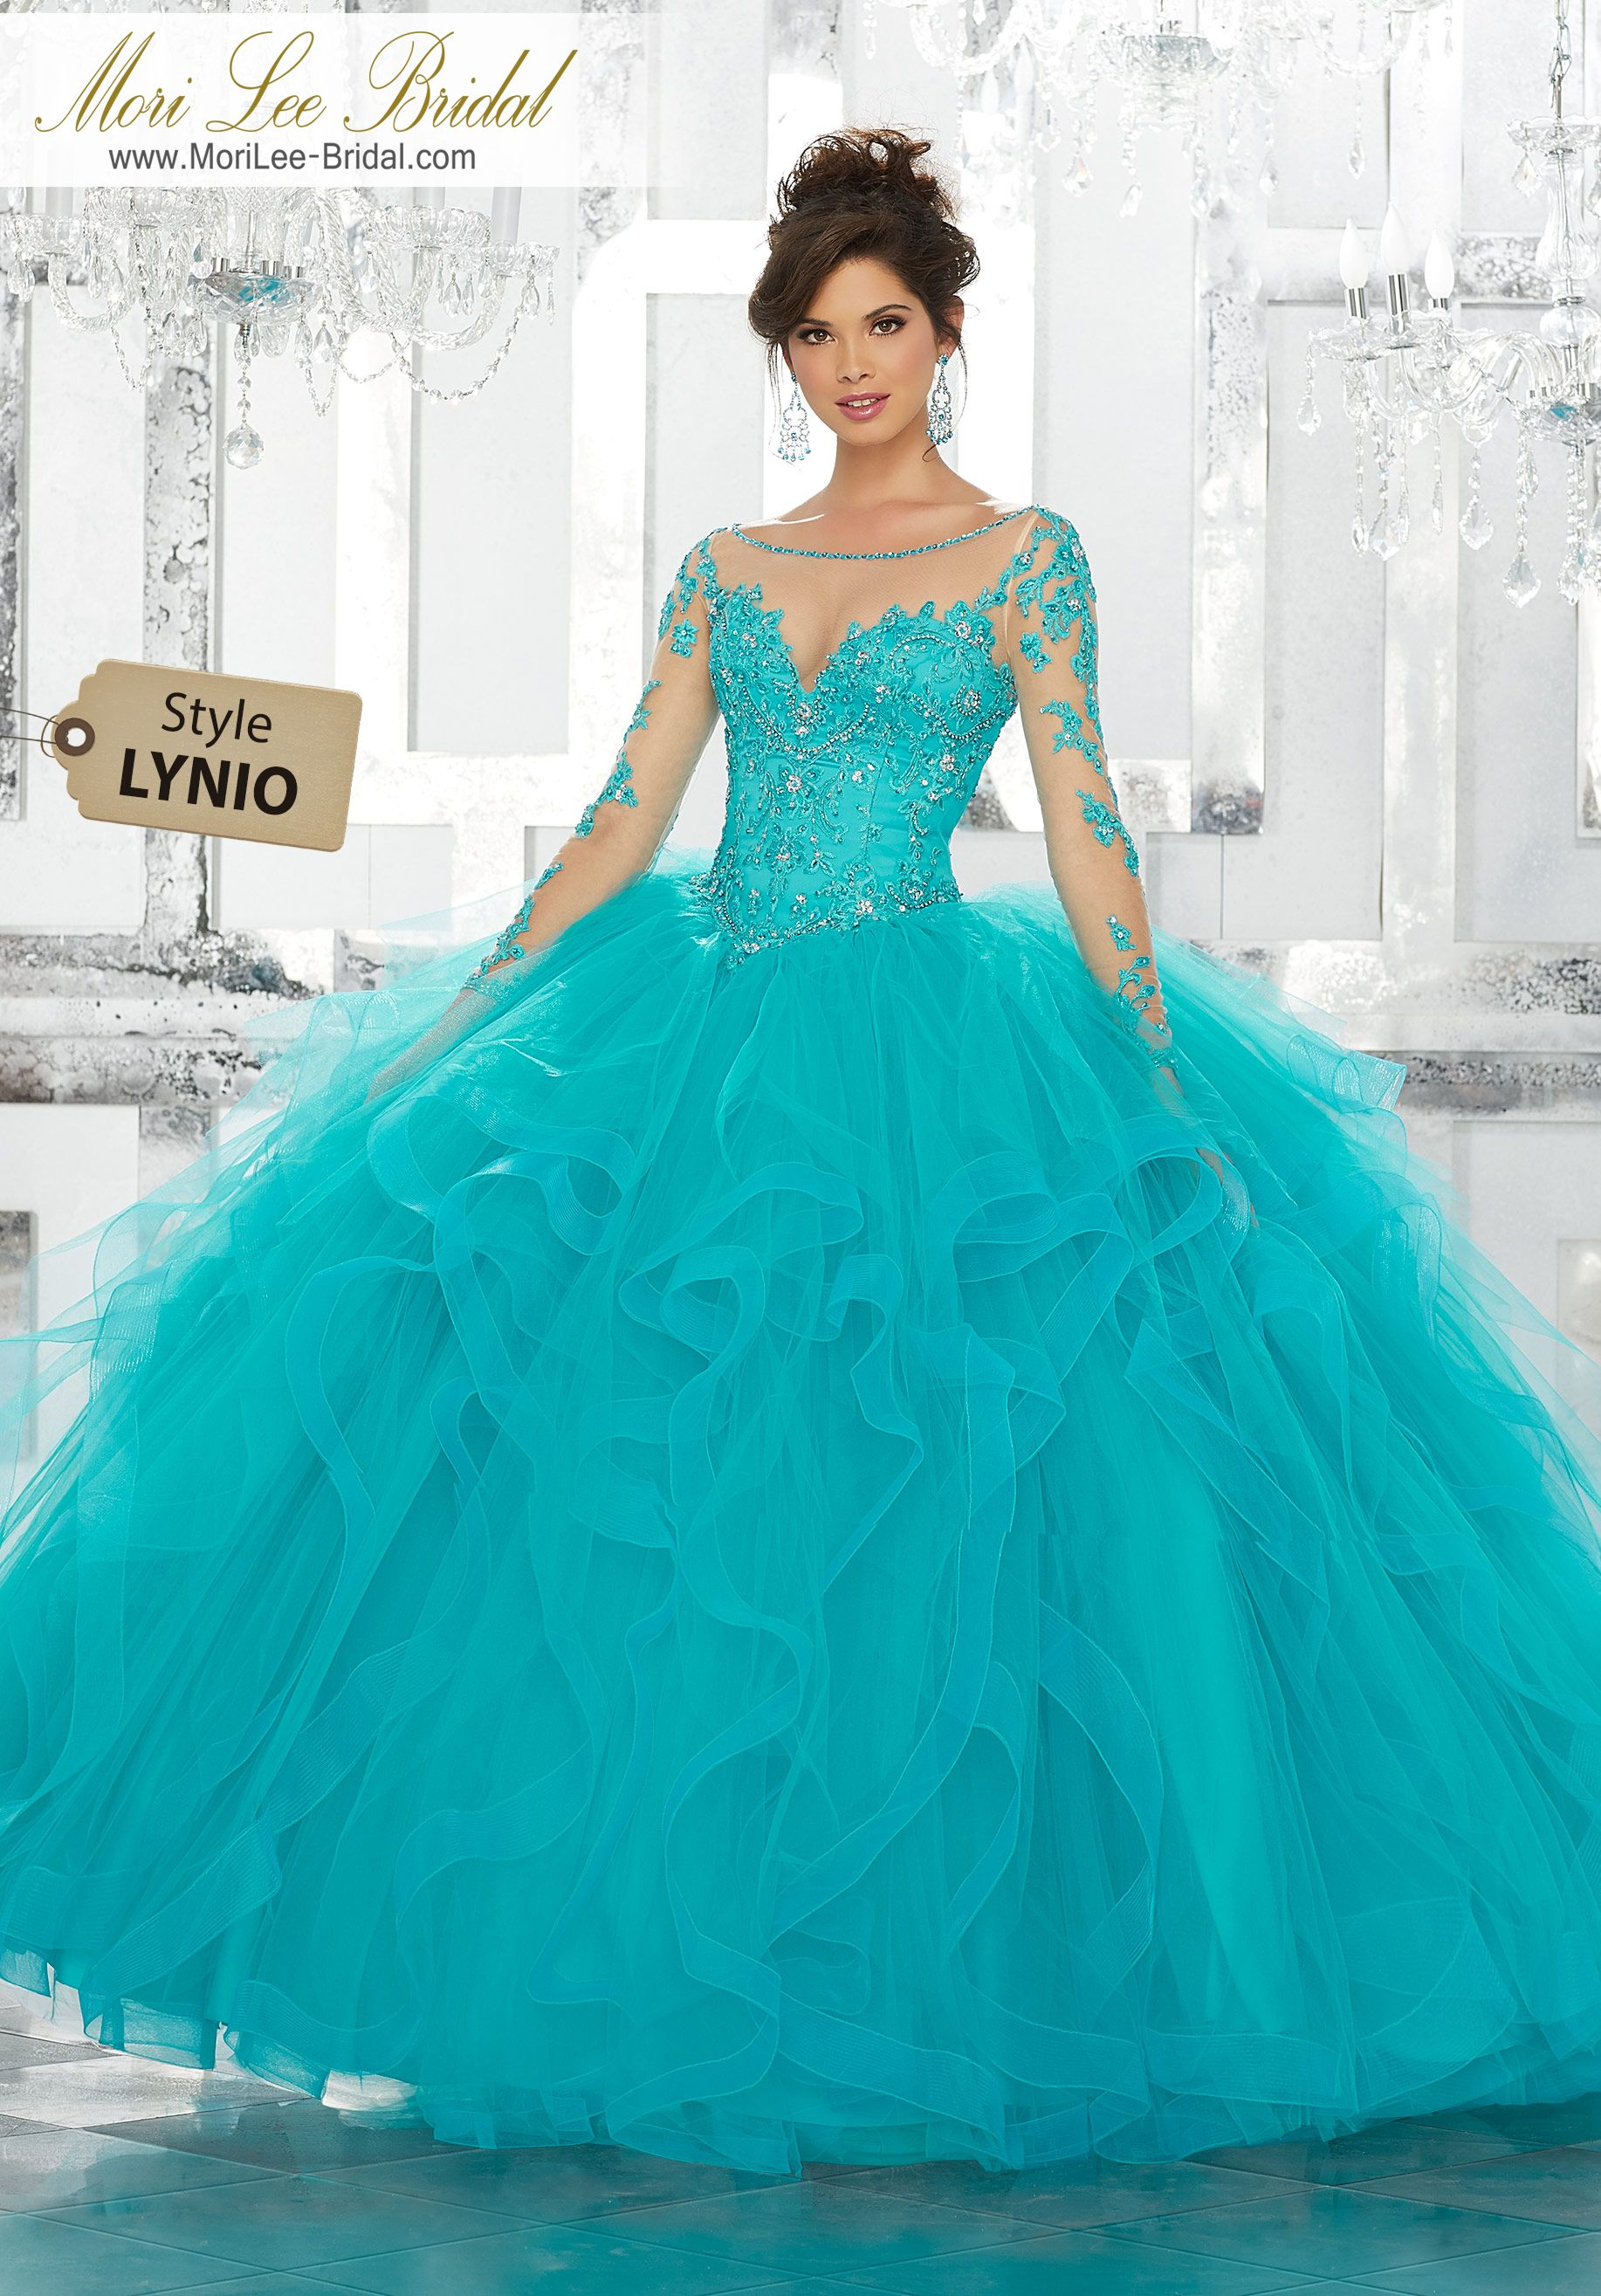 9b939c329 Style LYNIOBeaded Embroidery on Net with Flounced Tulle Ball Gown SkirtThis  Gorgeous Quinceañera Ballgown Features a Beaded and Embroidered Bodice  Accented ...